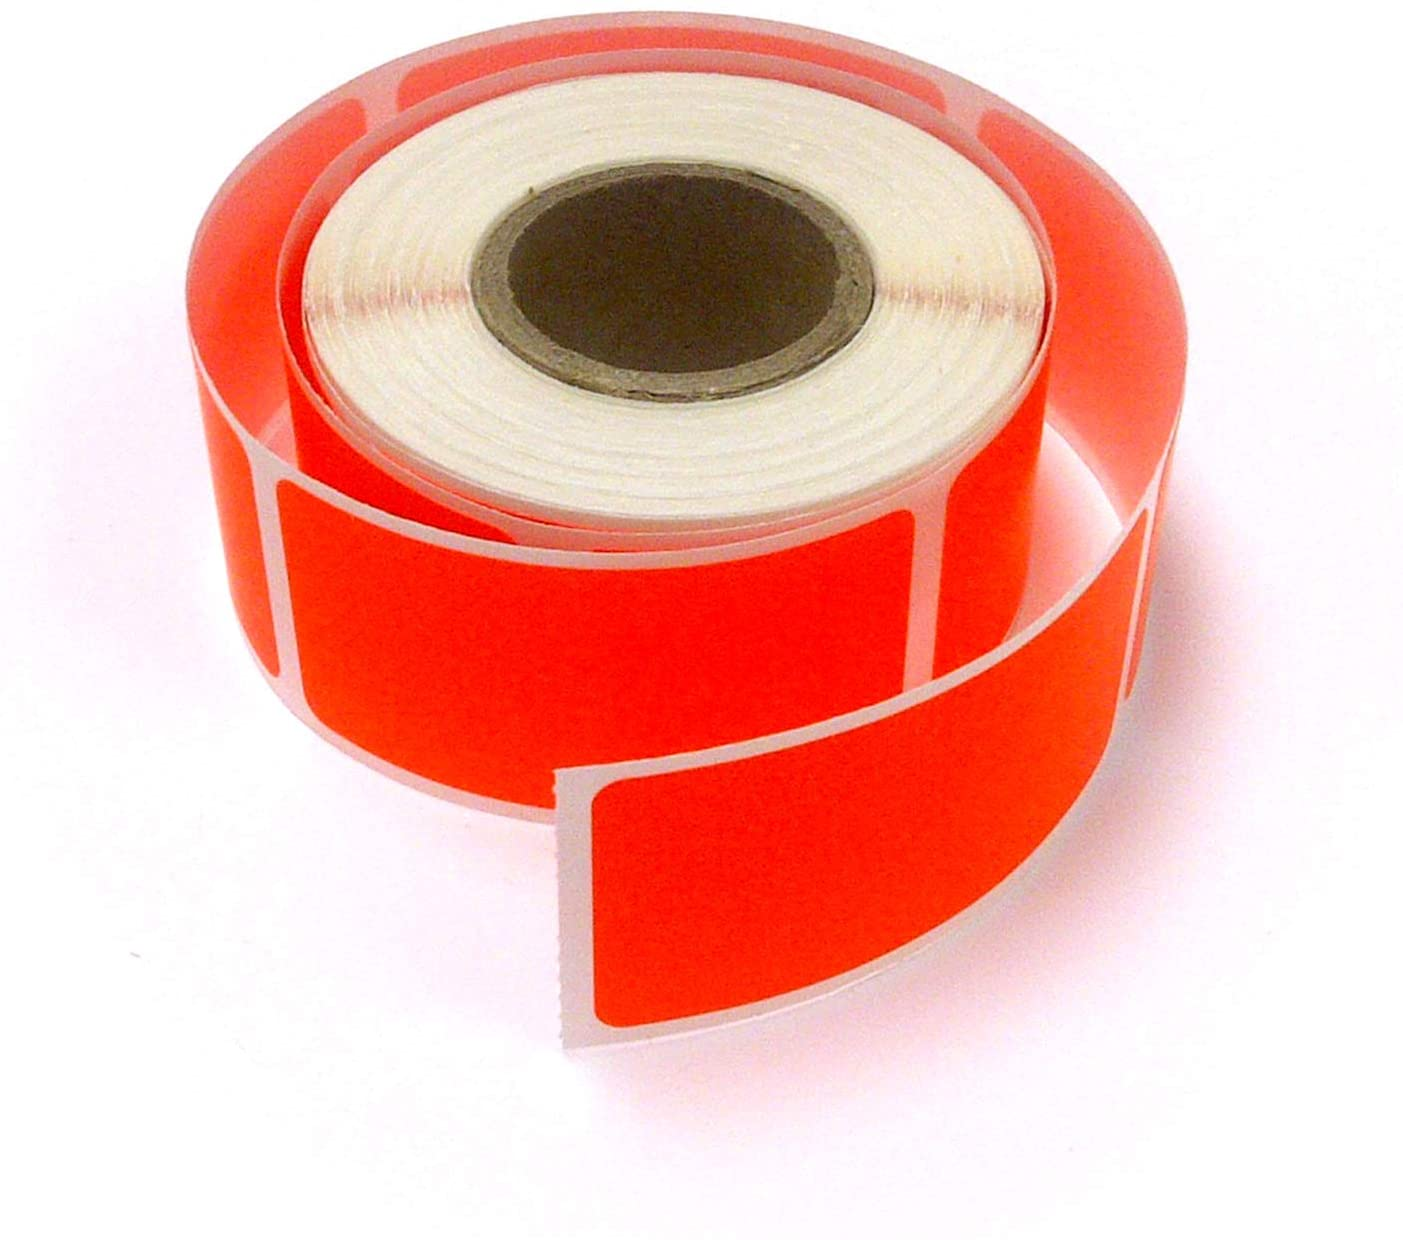 Next Day Labels, Rectangle Inventory Color Coding Labels, 250 Per Roll (Fluorescent Red, 2 X 1)